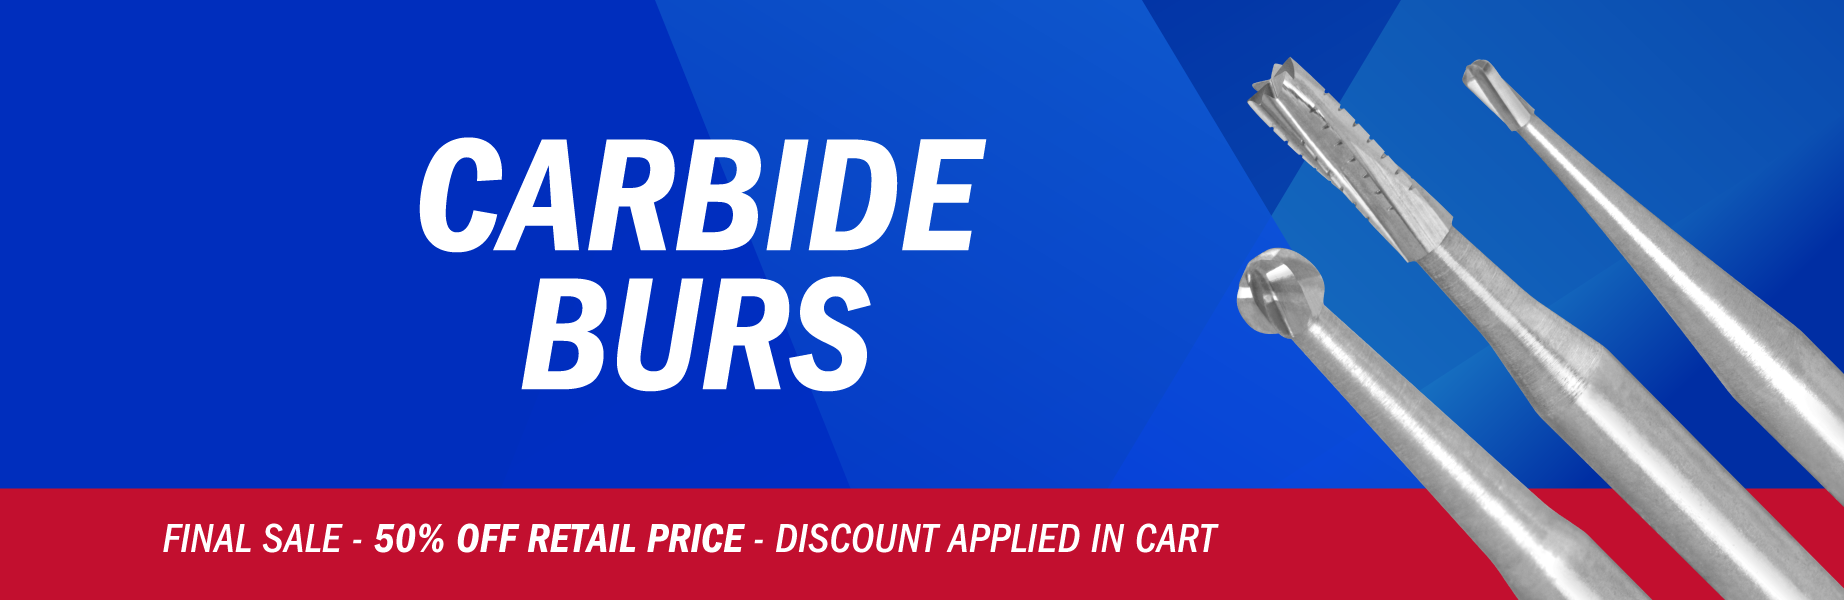 Final Sale Dental Carbide Burs - Up to 50% off Retail Price